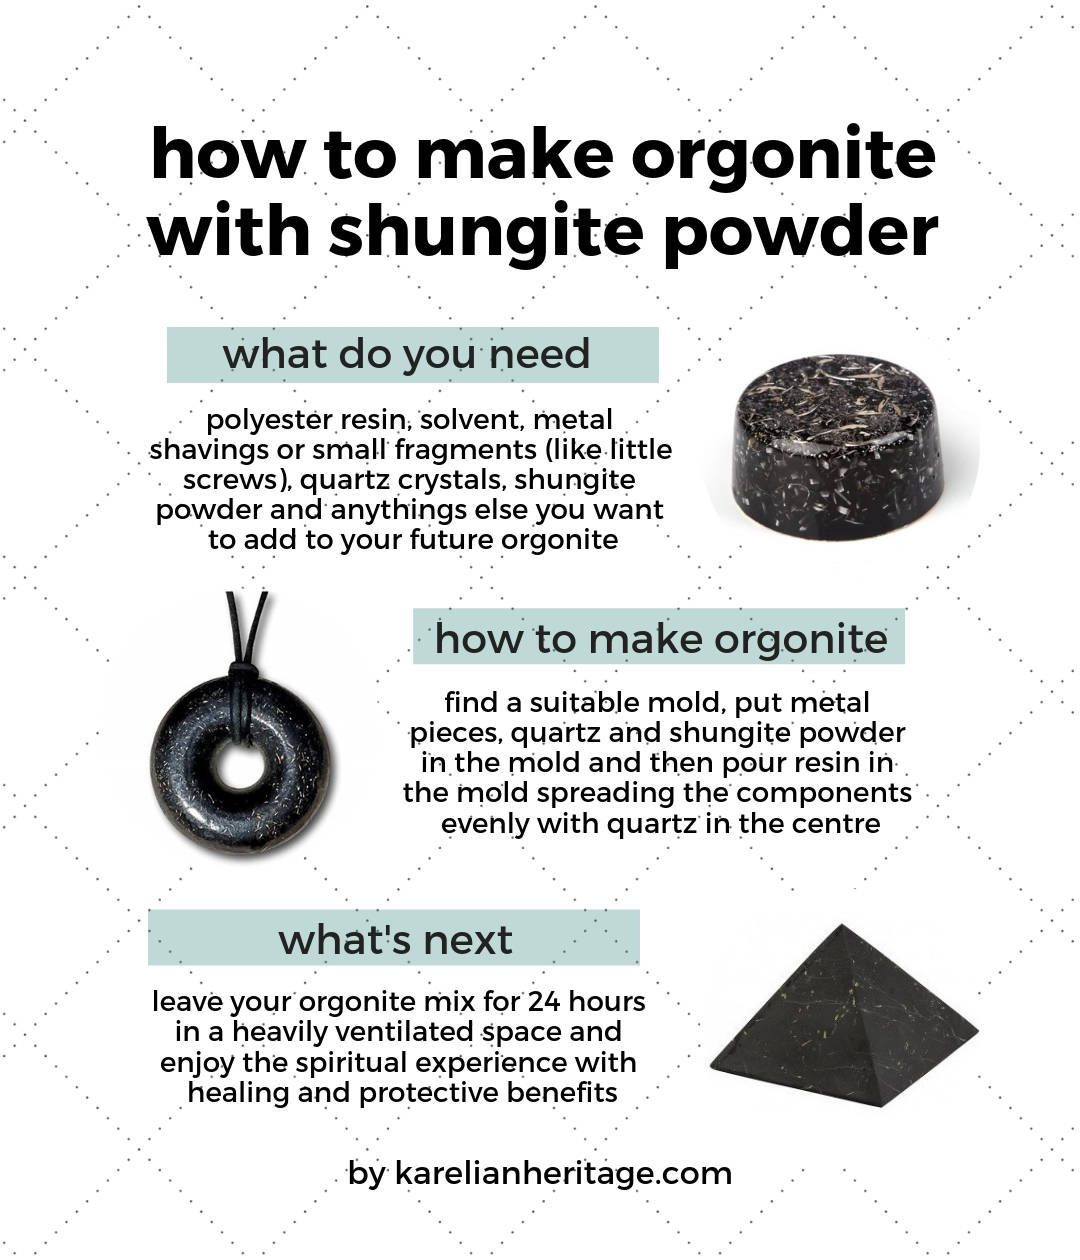 What is orgonite and its properties? How to use shungite